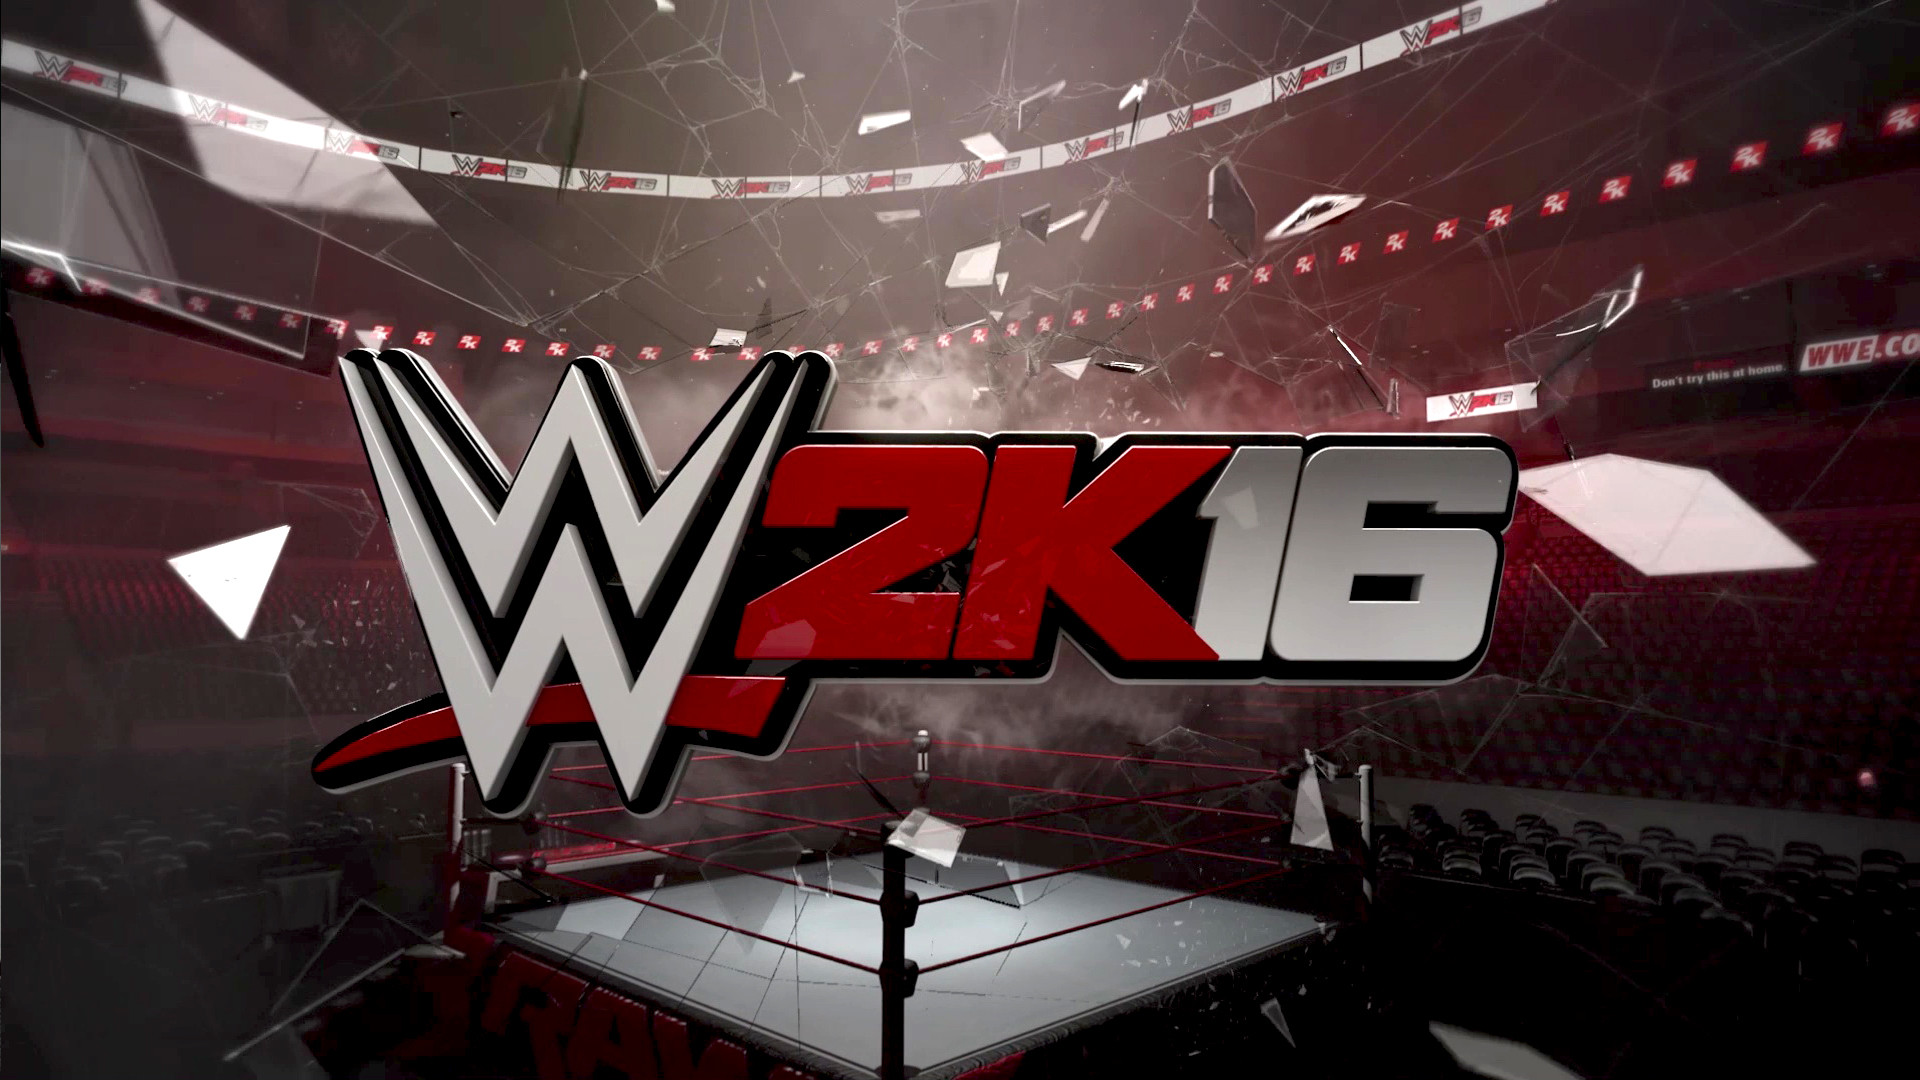 Res: 1920x1080, WWE2K16 Wallpaper Logo